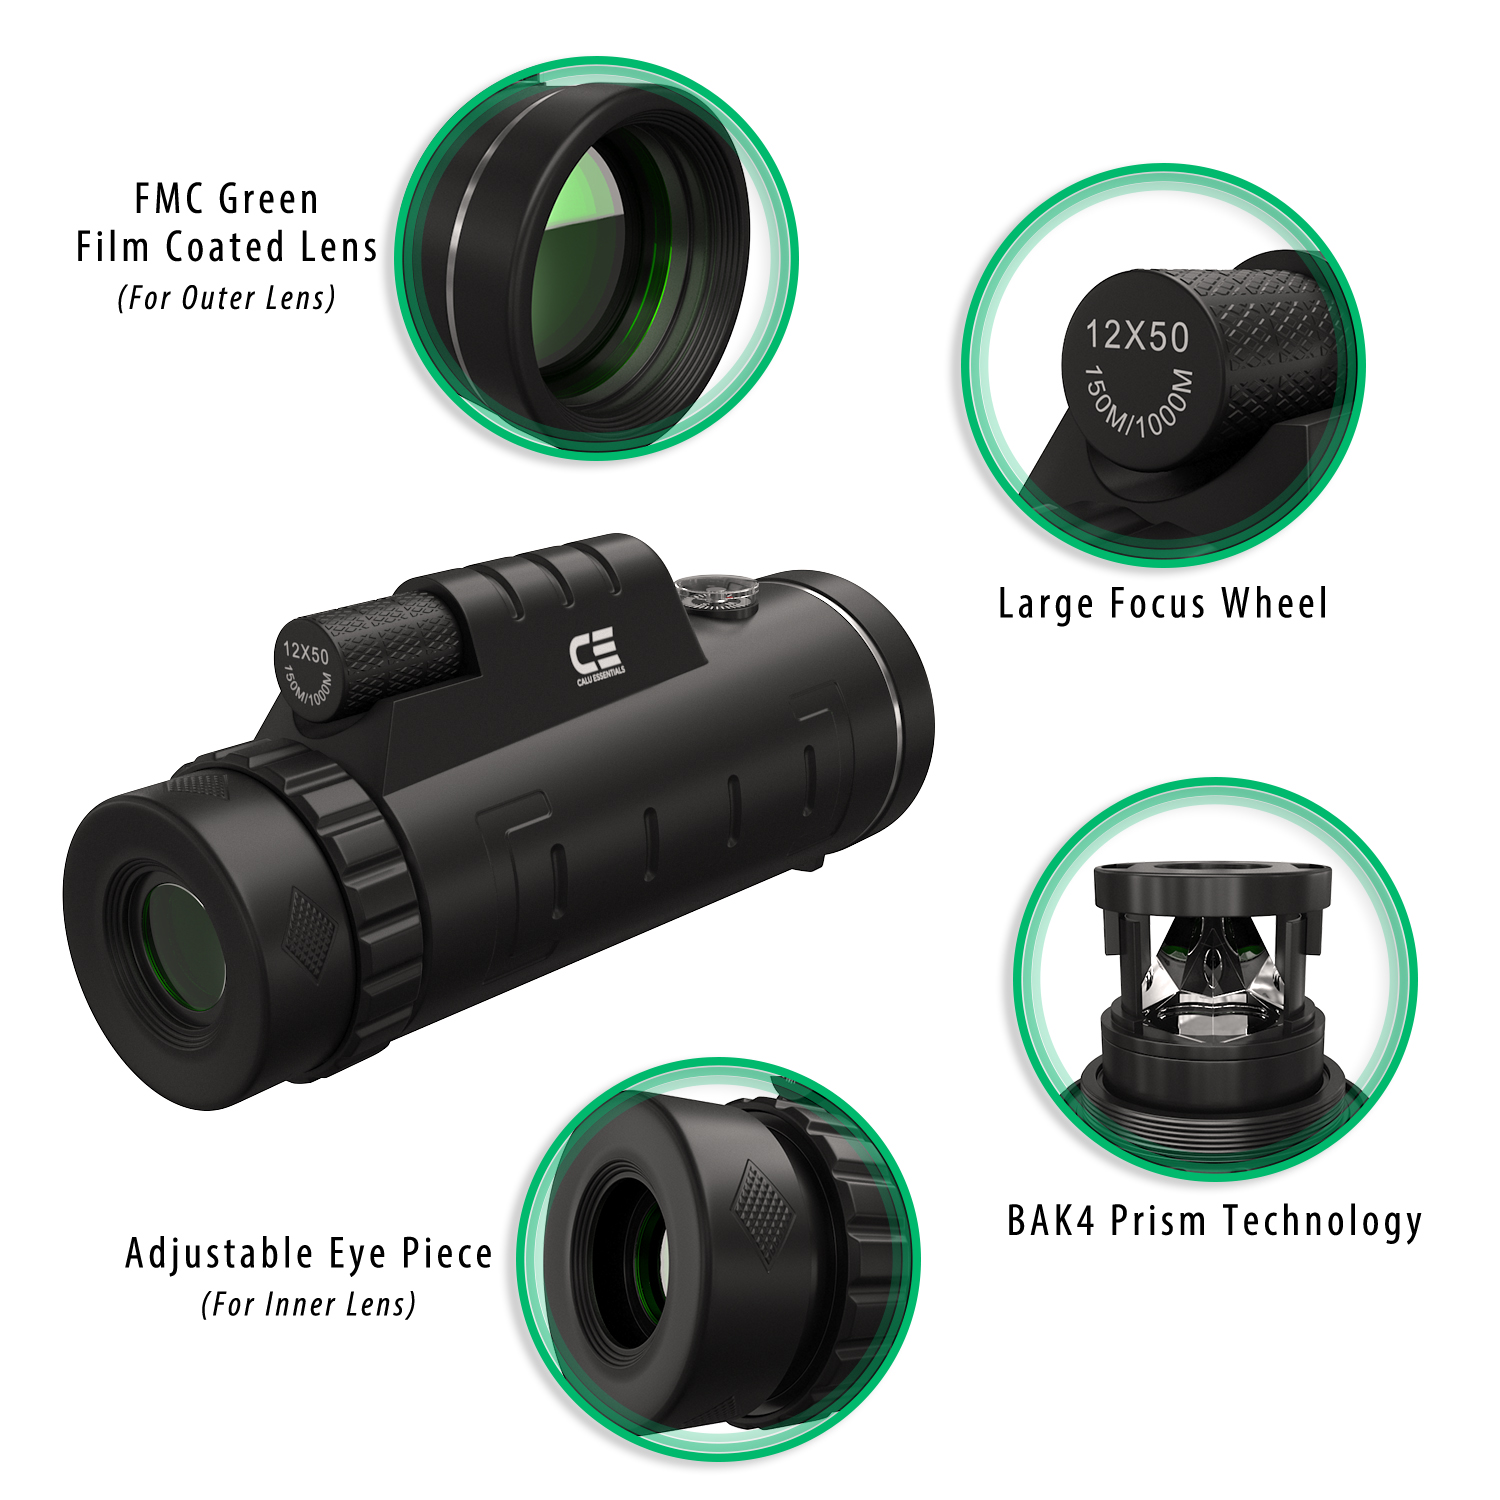 Monocular telescope info-graphic style rendering highlighting product features